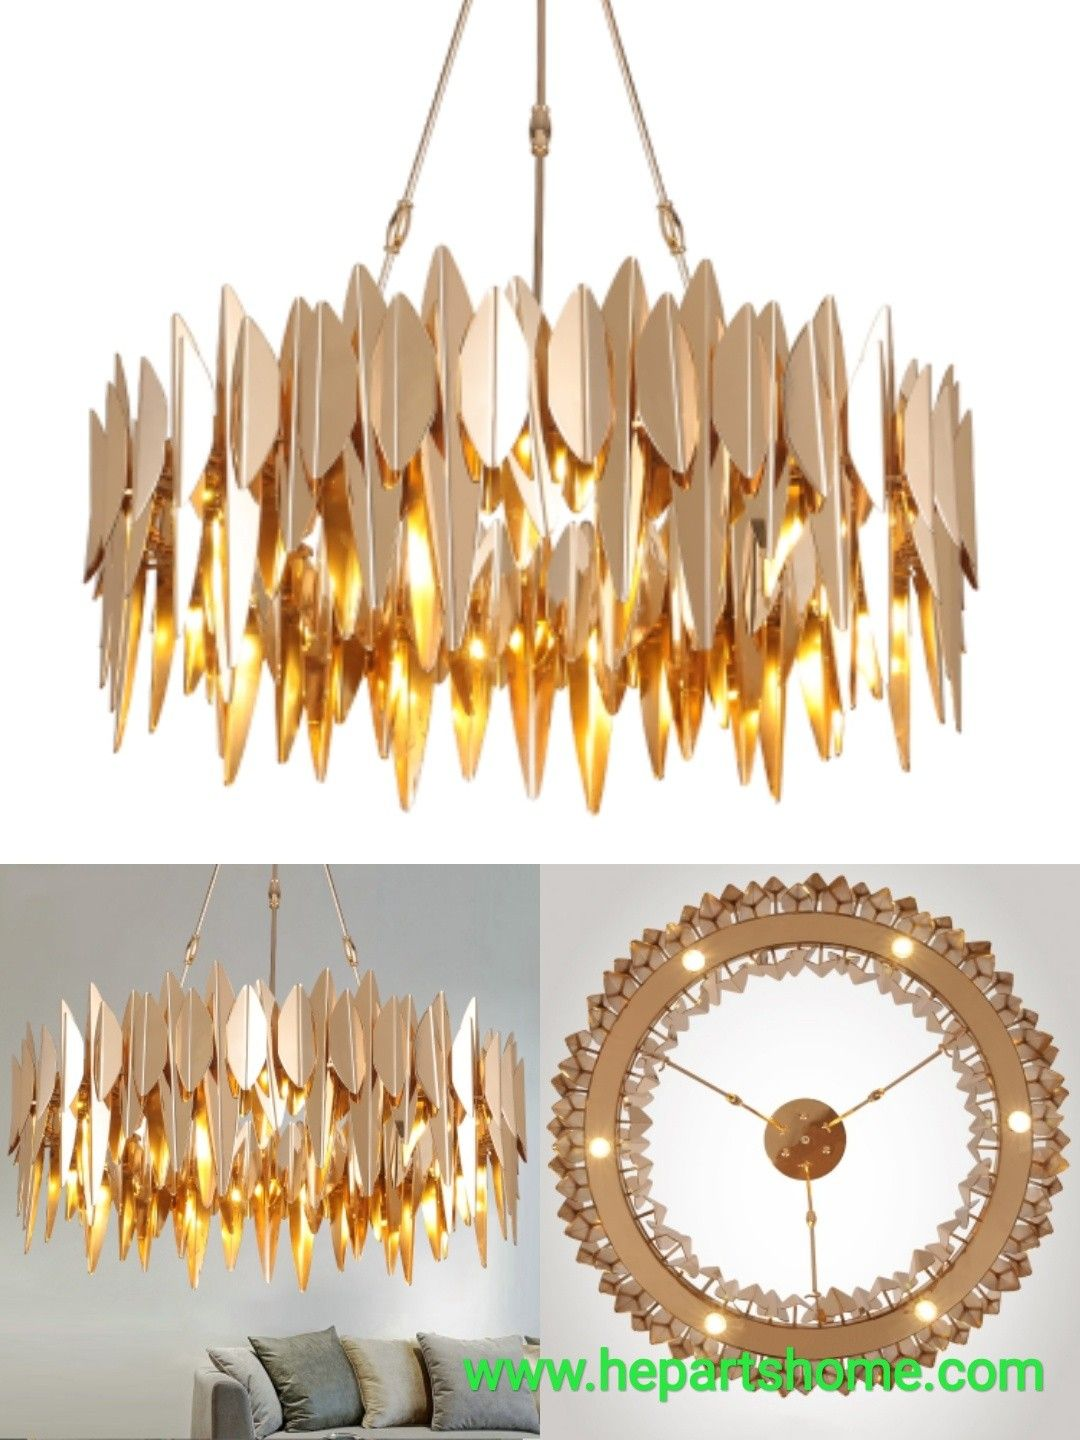 Are You Looking For High Quality Lamps Lights And Lighting